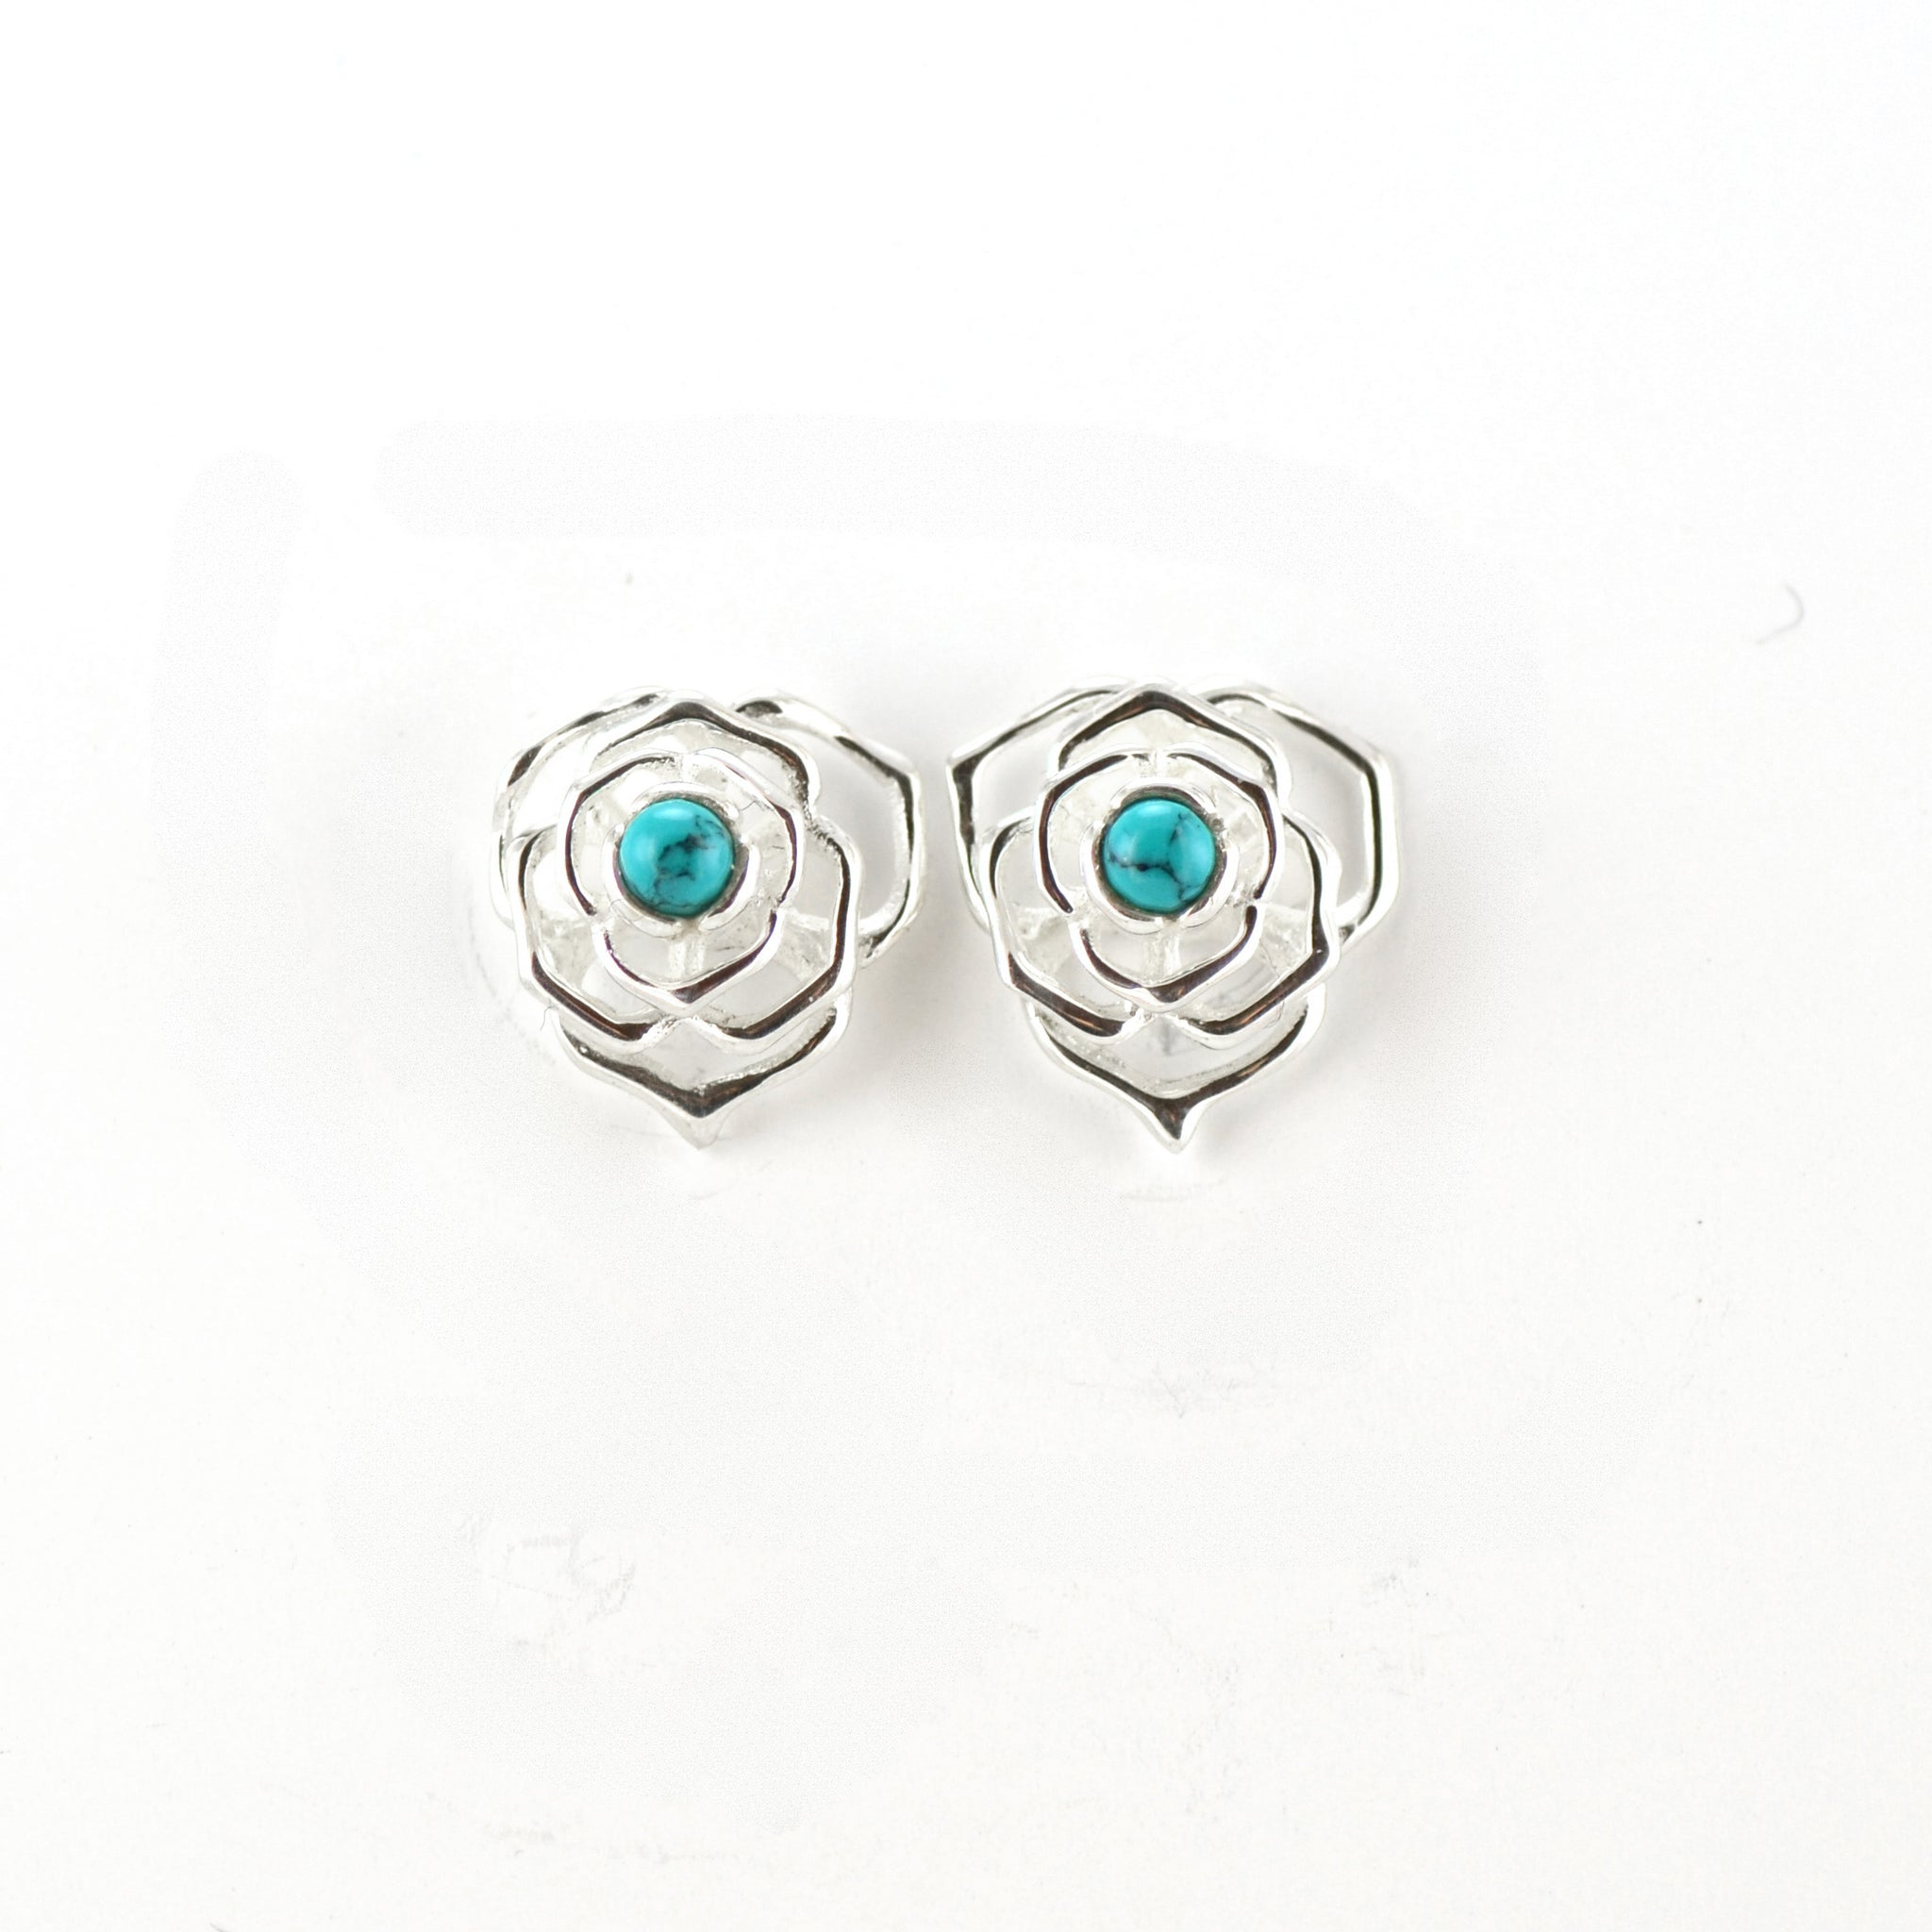 Silver Web Stud Earrings With Turquoise Peak